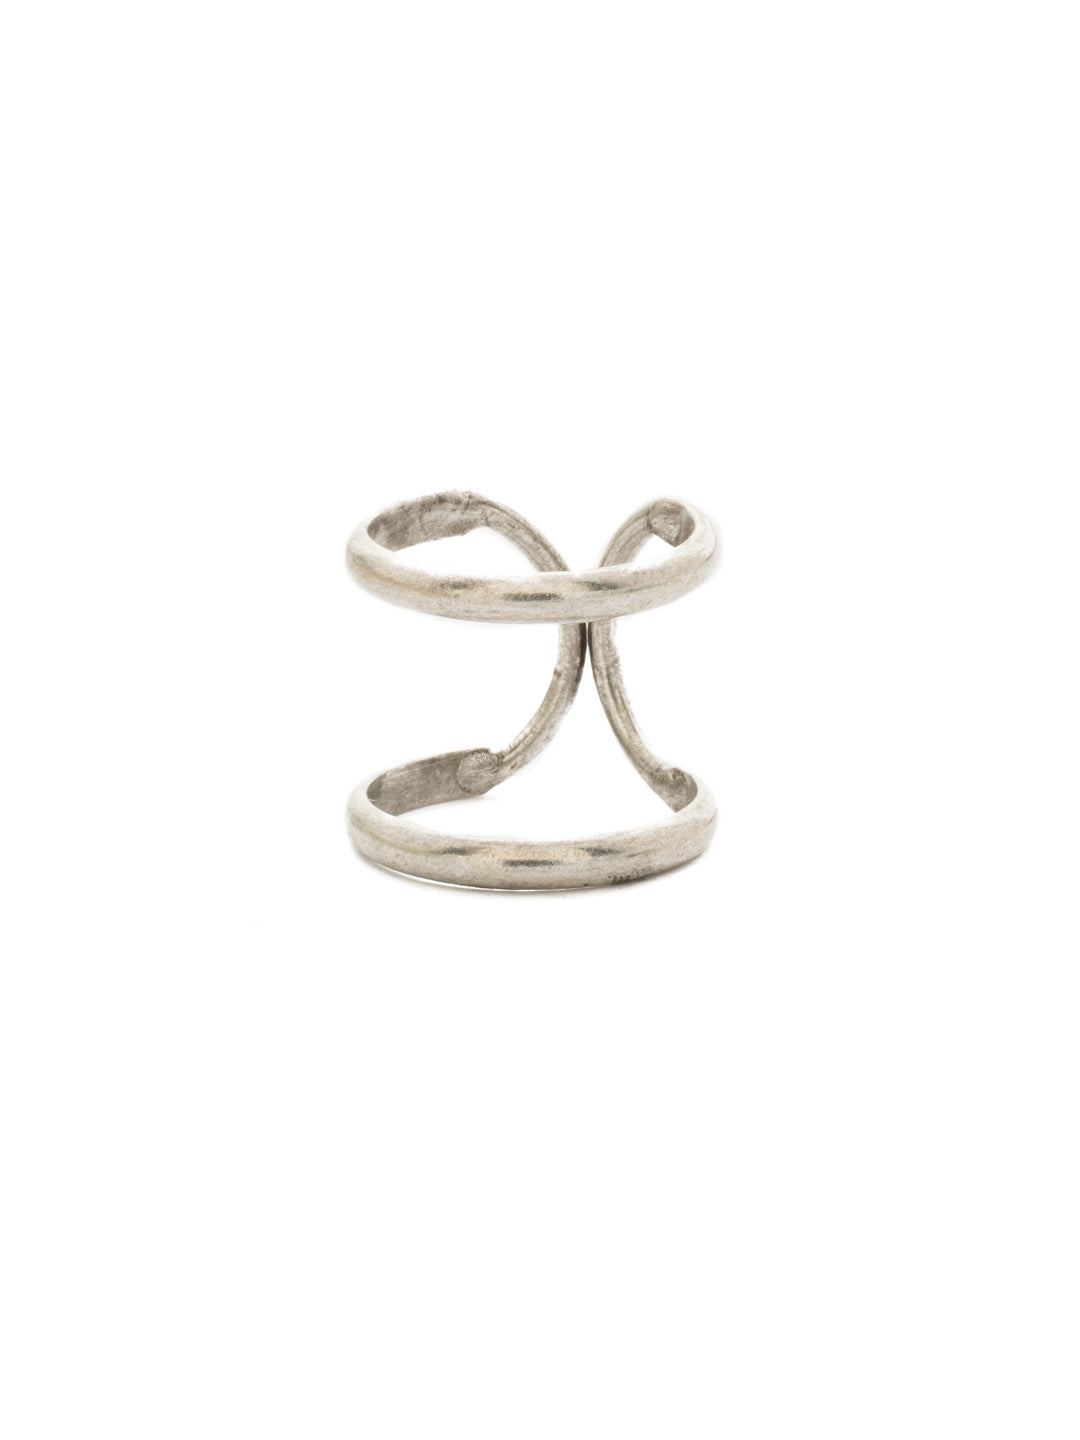 Running In Circles Stacked Ring - RDW3ASCRY